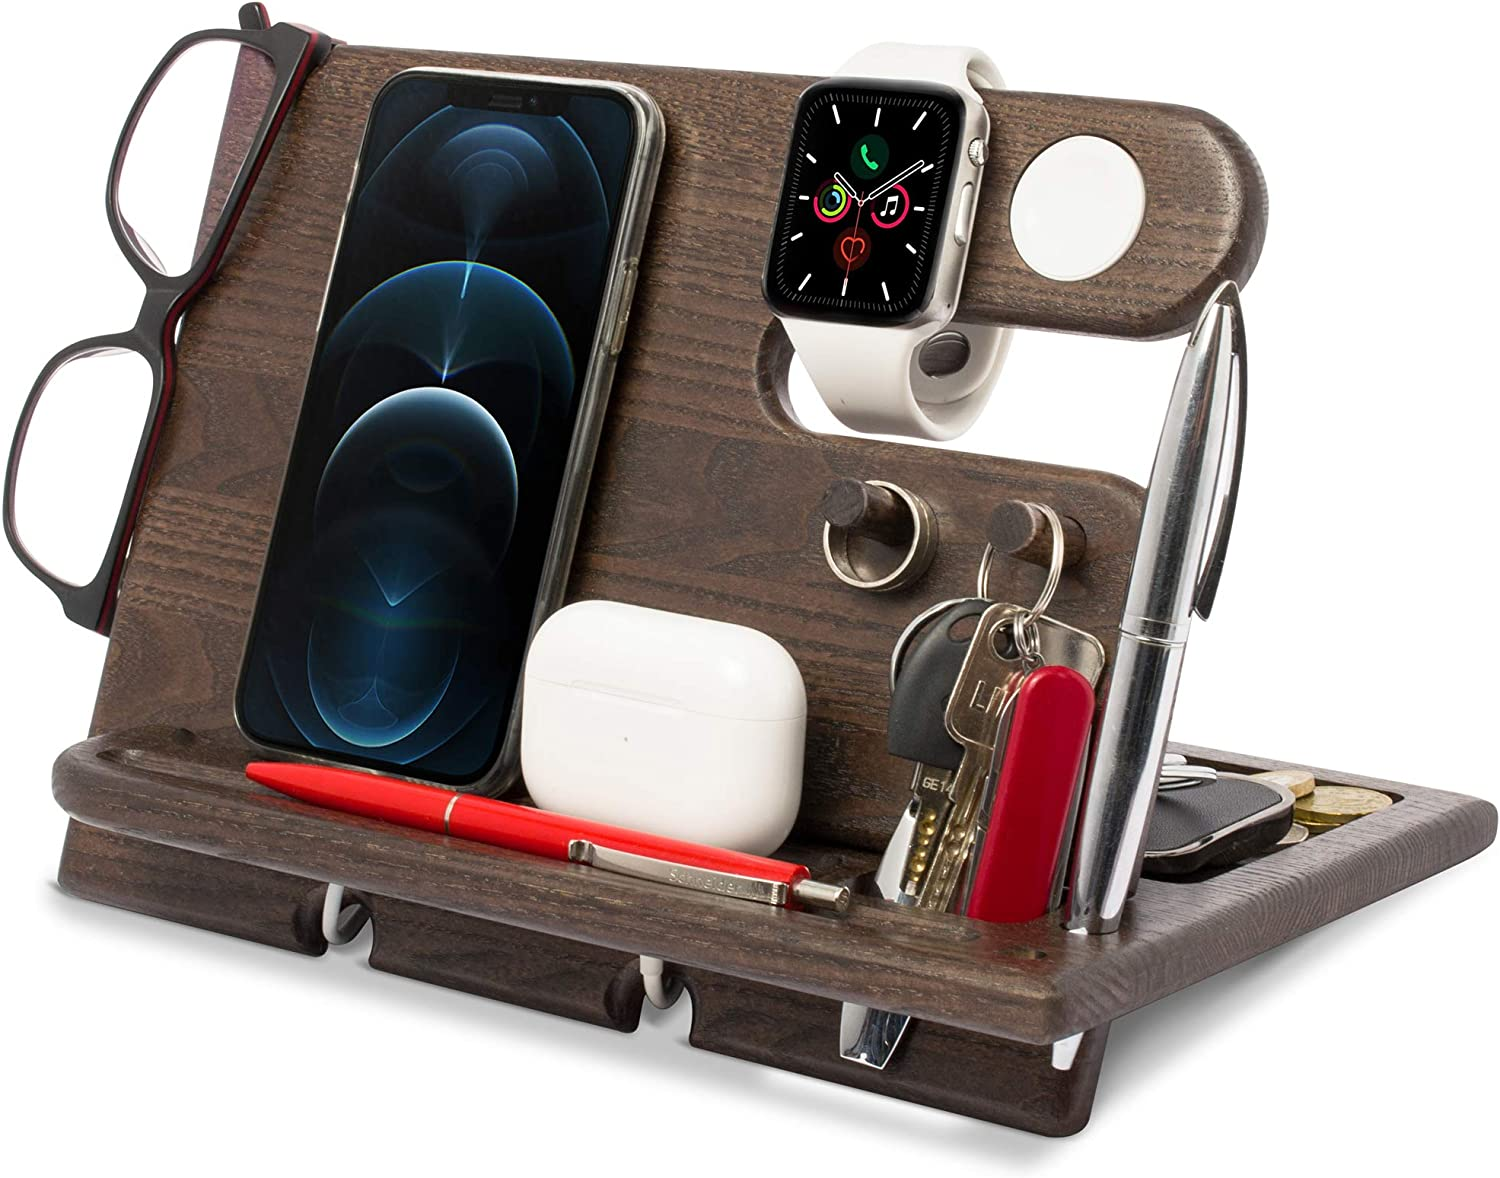 TESLYAR Wood Phone Docking Station Ash Key Holder Wallet Stand Watch Organizer Men Gift Husband Wife Anniversary Dad Birthday Nightstand Father Graduation Gadgets Compatible with iPhone AirPods iWatch